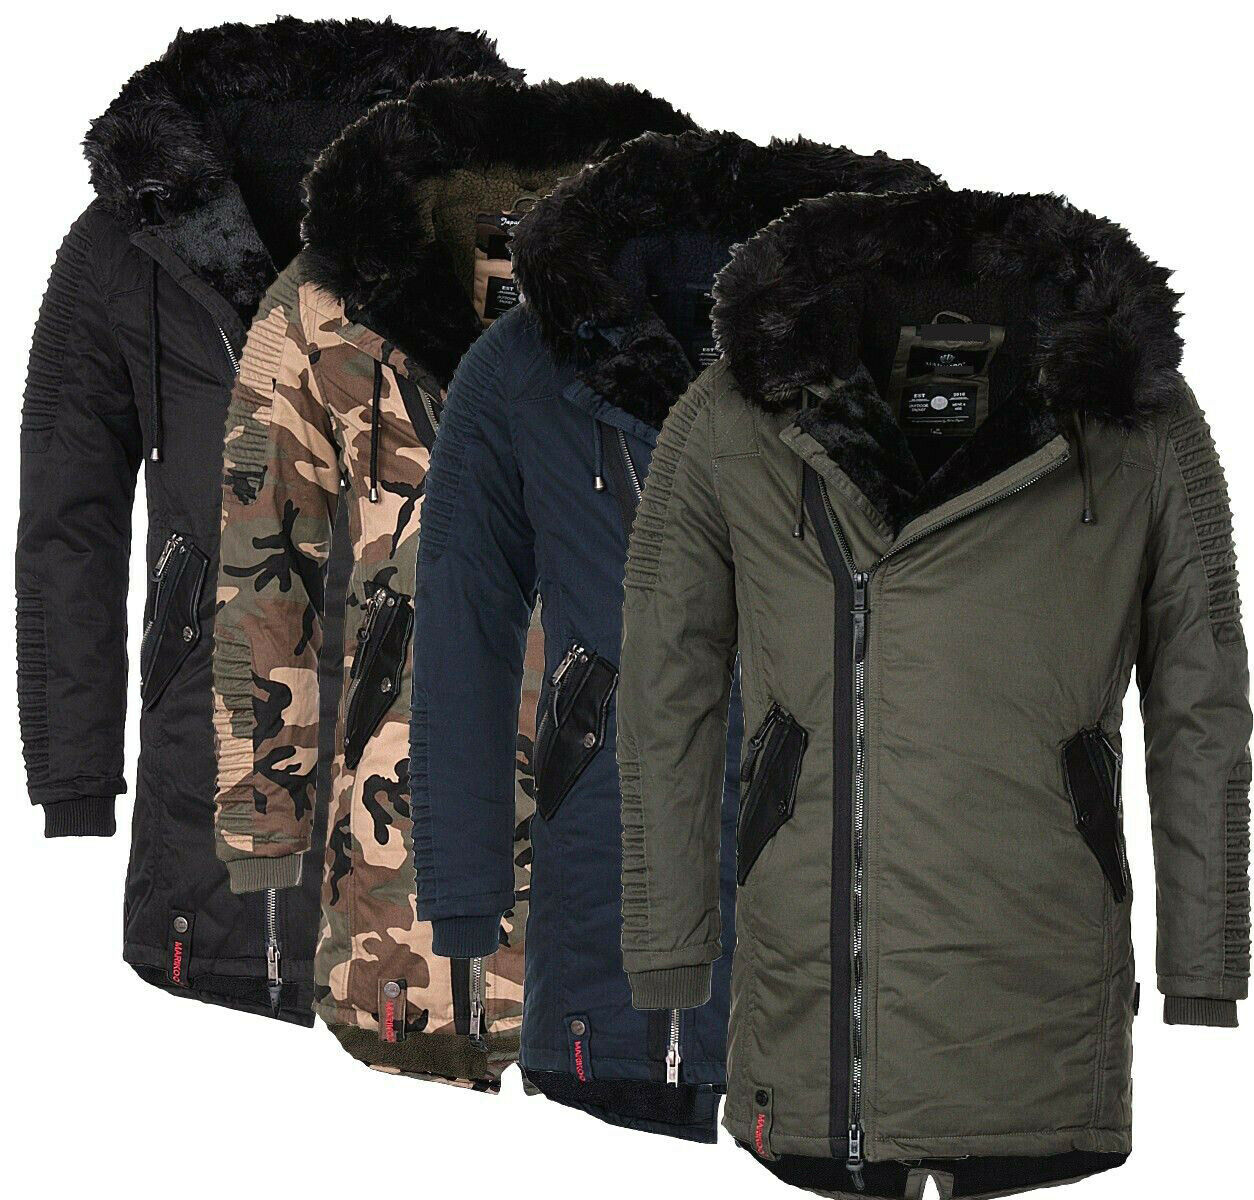 marikoo osaka herren warme winterjacke winter parka wintermantel lange jacke neu eur 79 90. Black Bedroom Furniture Sets. Home Design Ideas